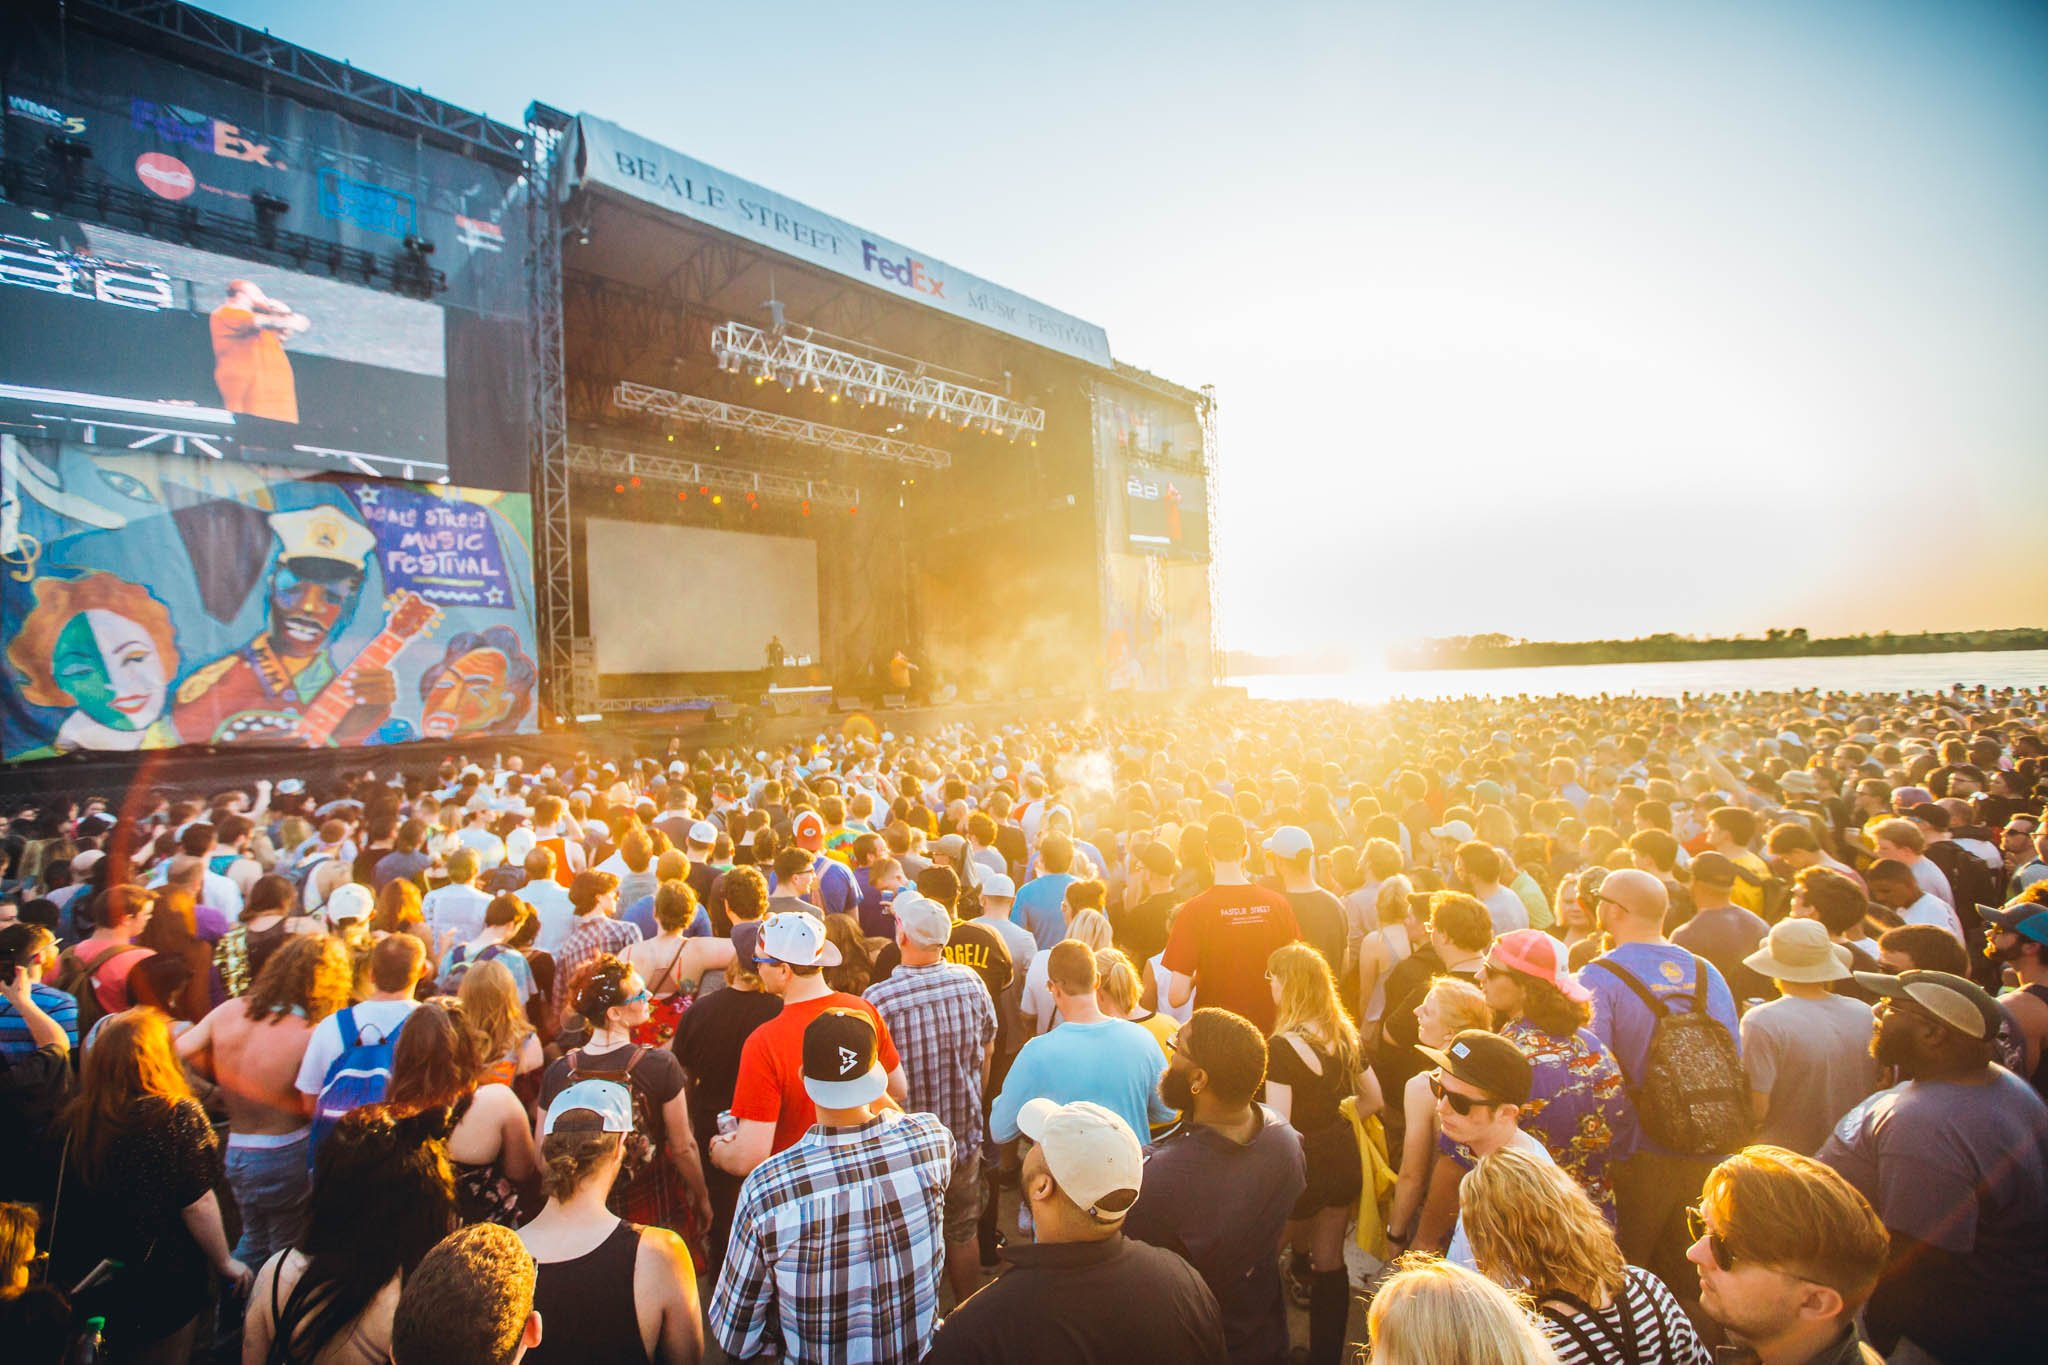 Beale Street Music Festival 2020 Beale Street Music Festival 2020 | Lineup | Tickets | Schedule